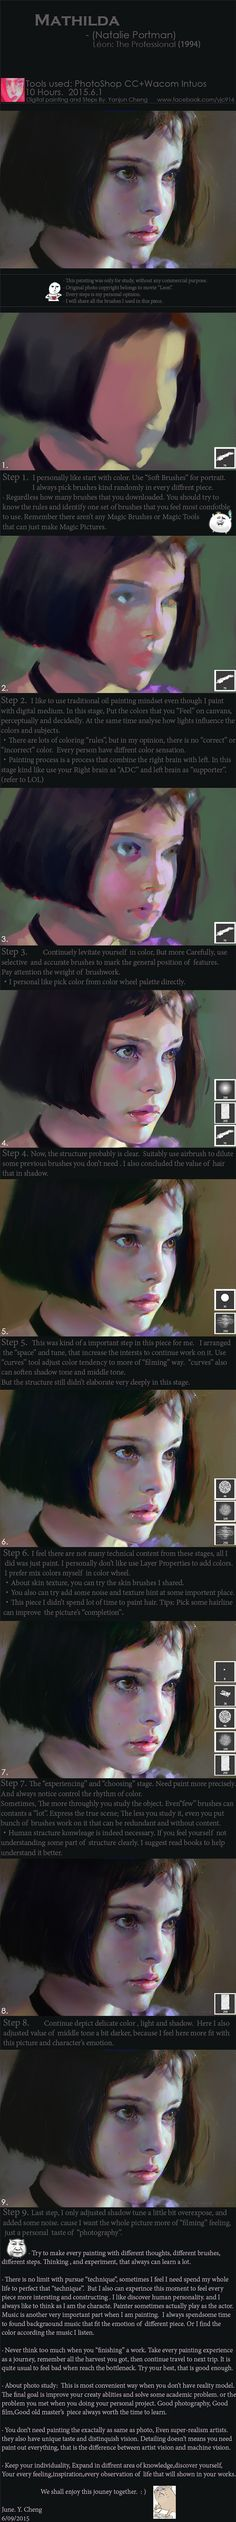 Mathilda process by Yanjun Cheng on Behance #paiting #tutorial